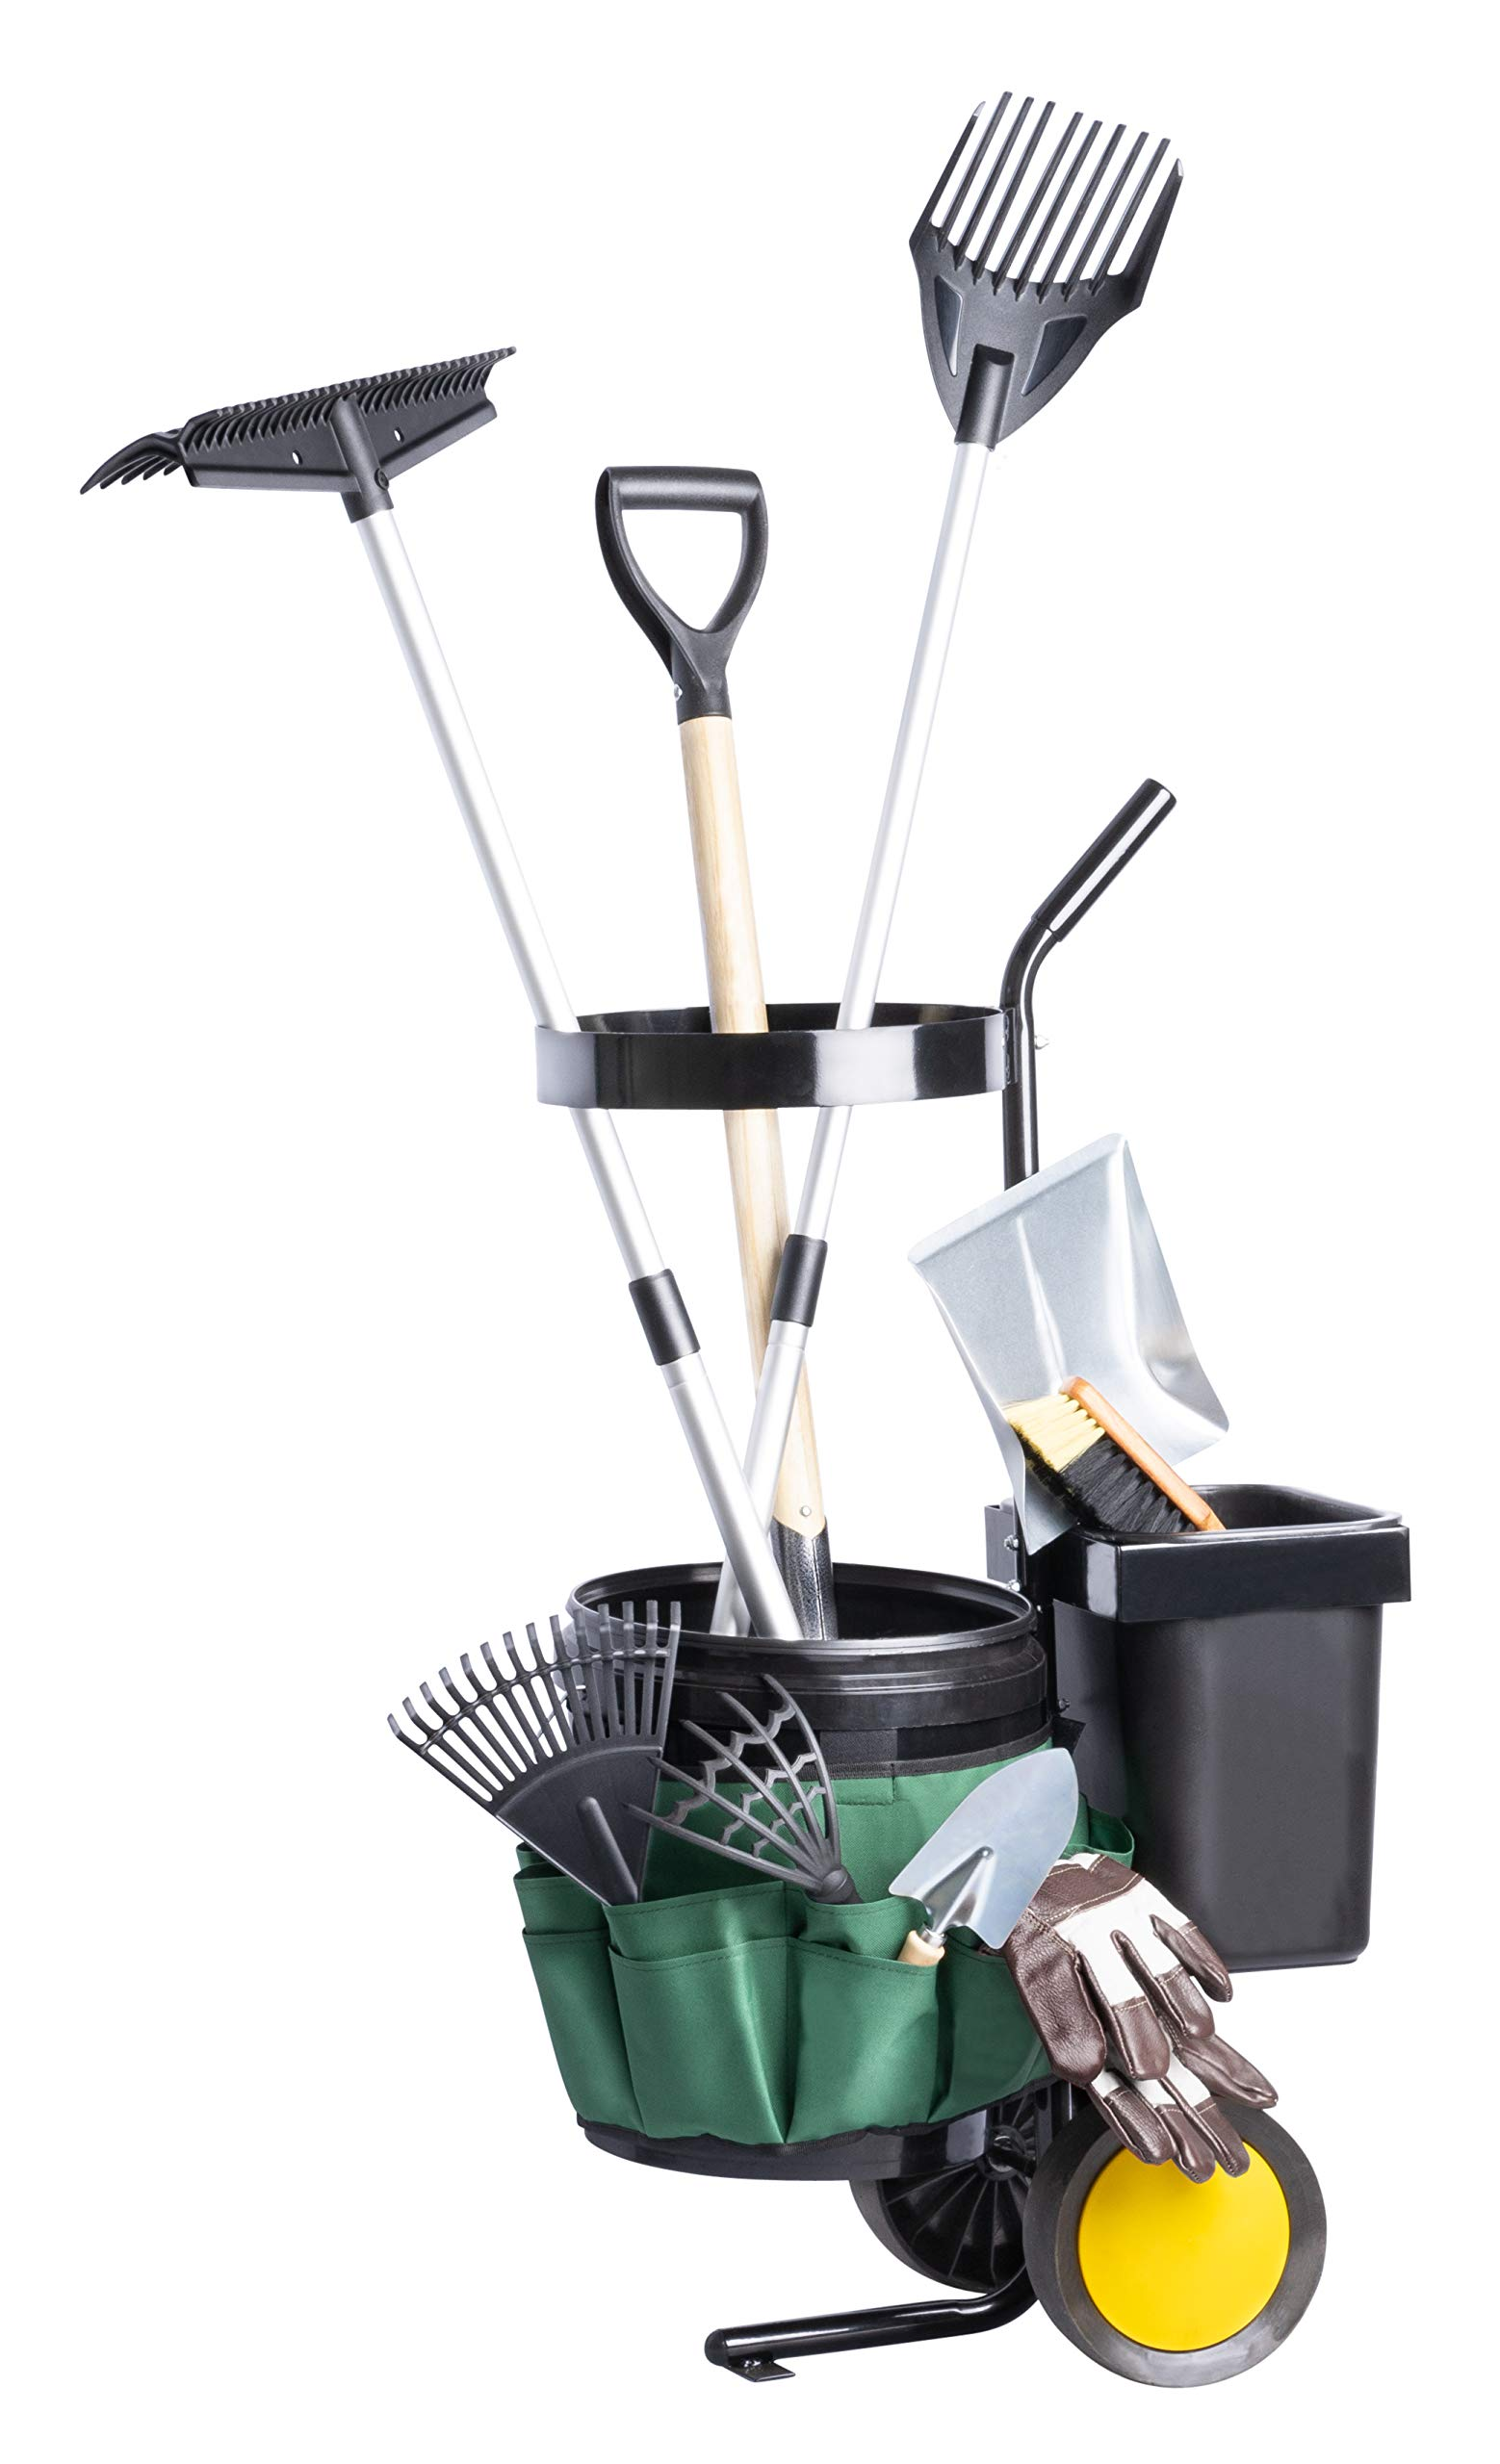 UPP Garden Trolley | Carrier for Big Gardening Tools and Holds 12 Hand Tools | Garden Cart With 2 Buckets for Potting Soil or Yard Waste | Garden Tools Storage on Wheels